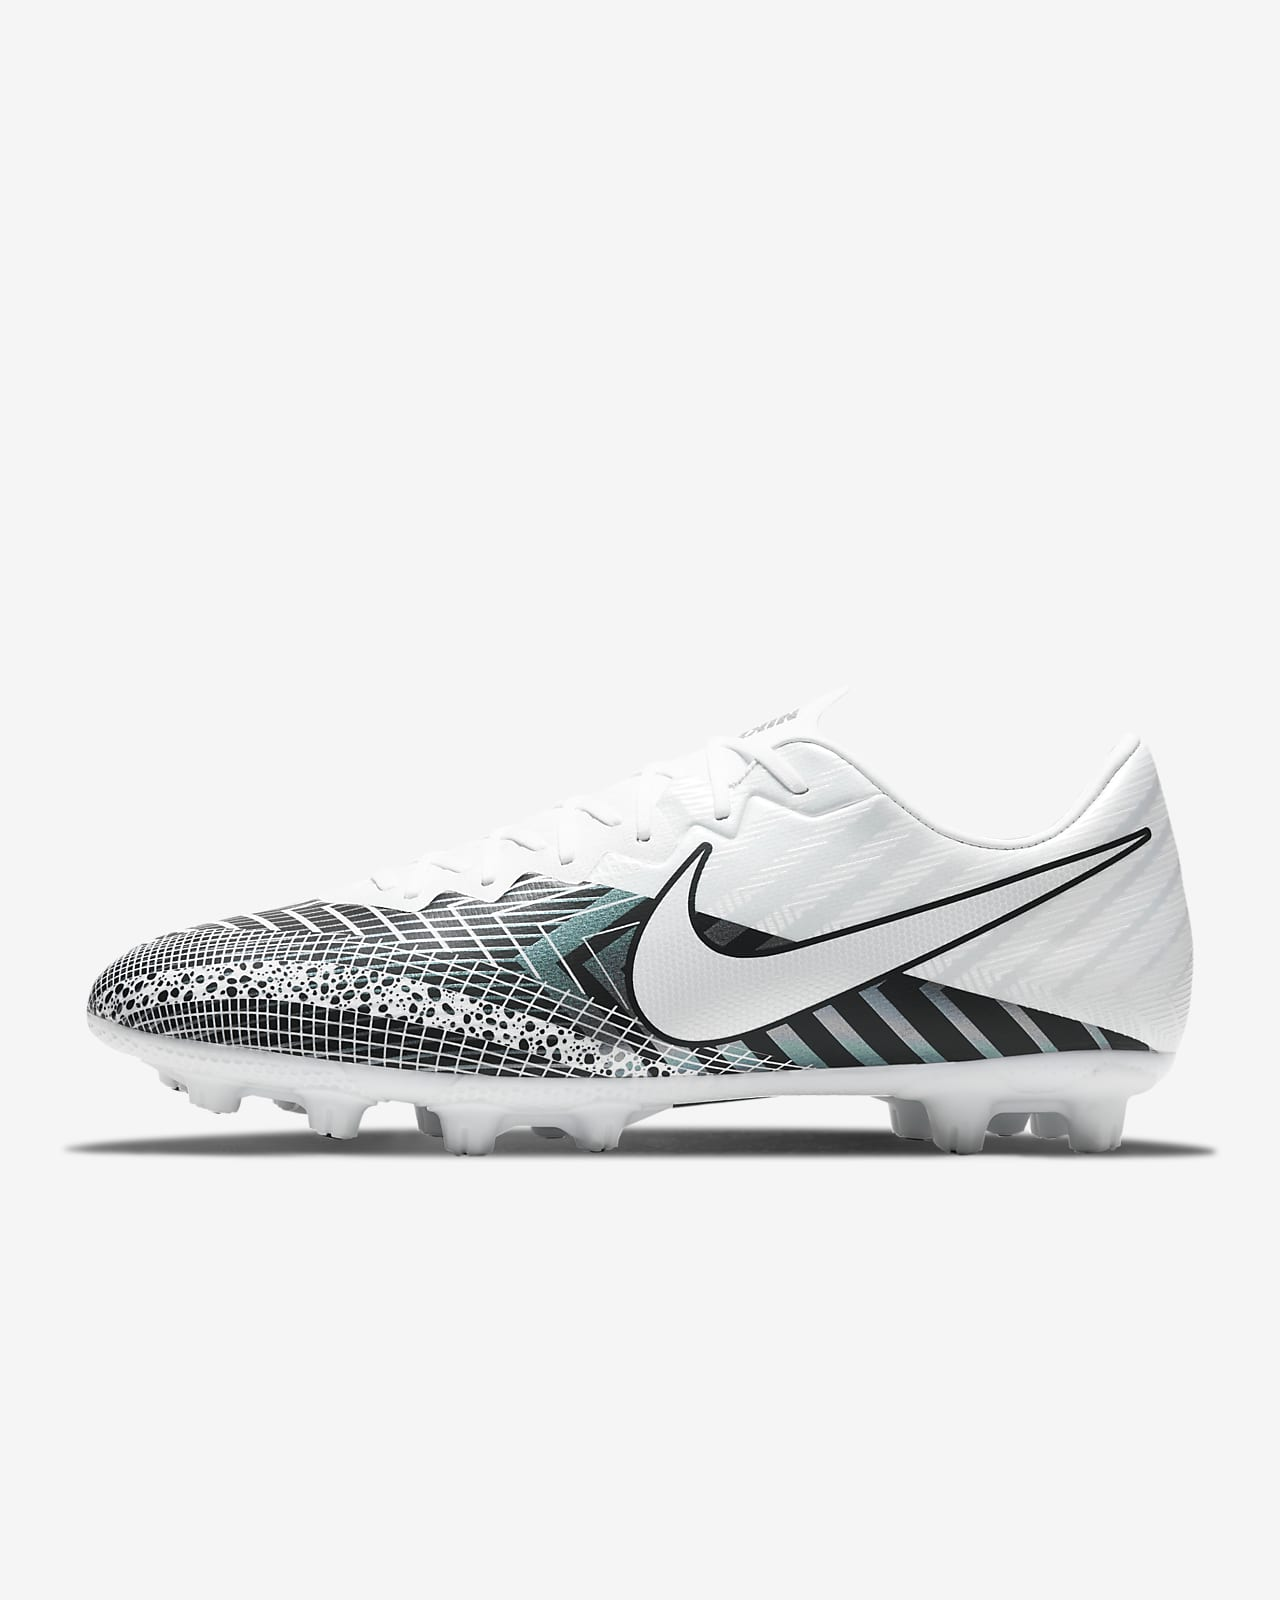 Nike Mercurial Vapor 13 Pro MDS HG Hard-Ground Soccer Cleat